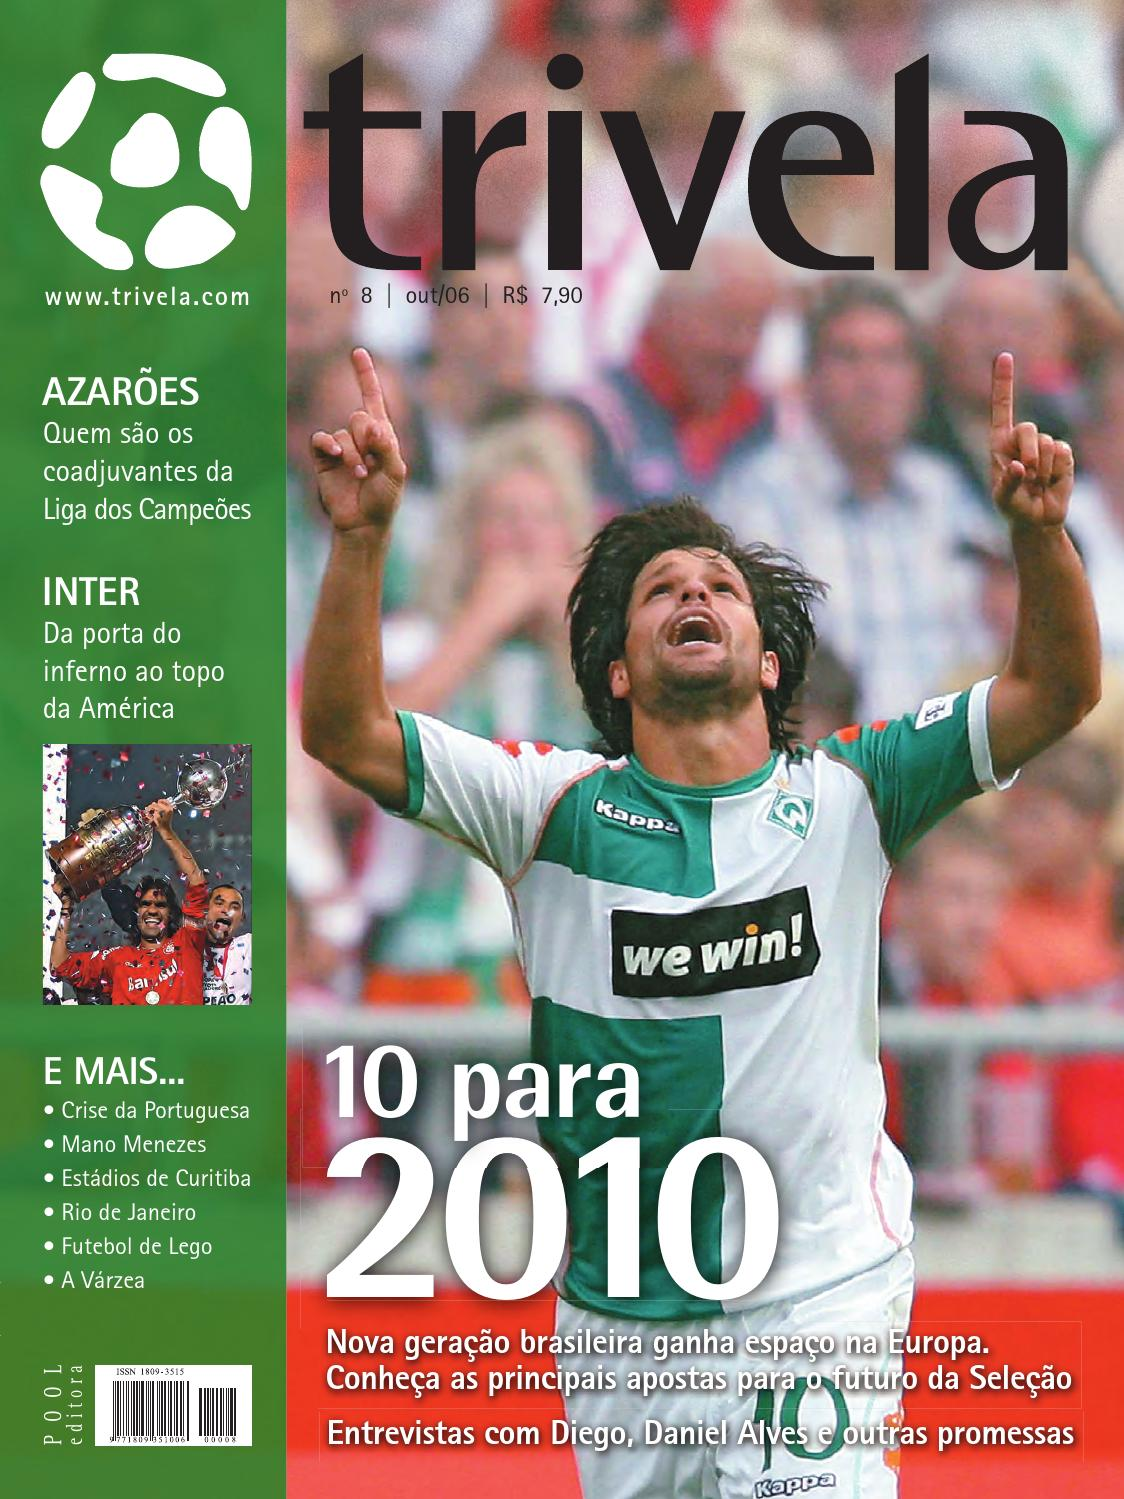 Trivela 08 (out 06) by °F451 - issuu 4c600a129cd59